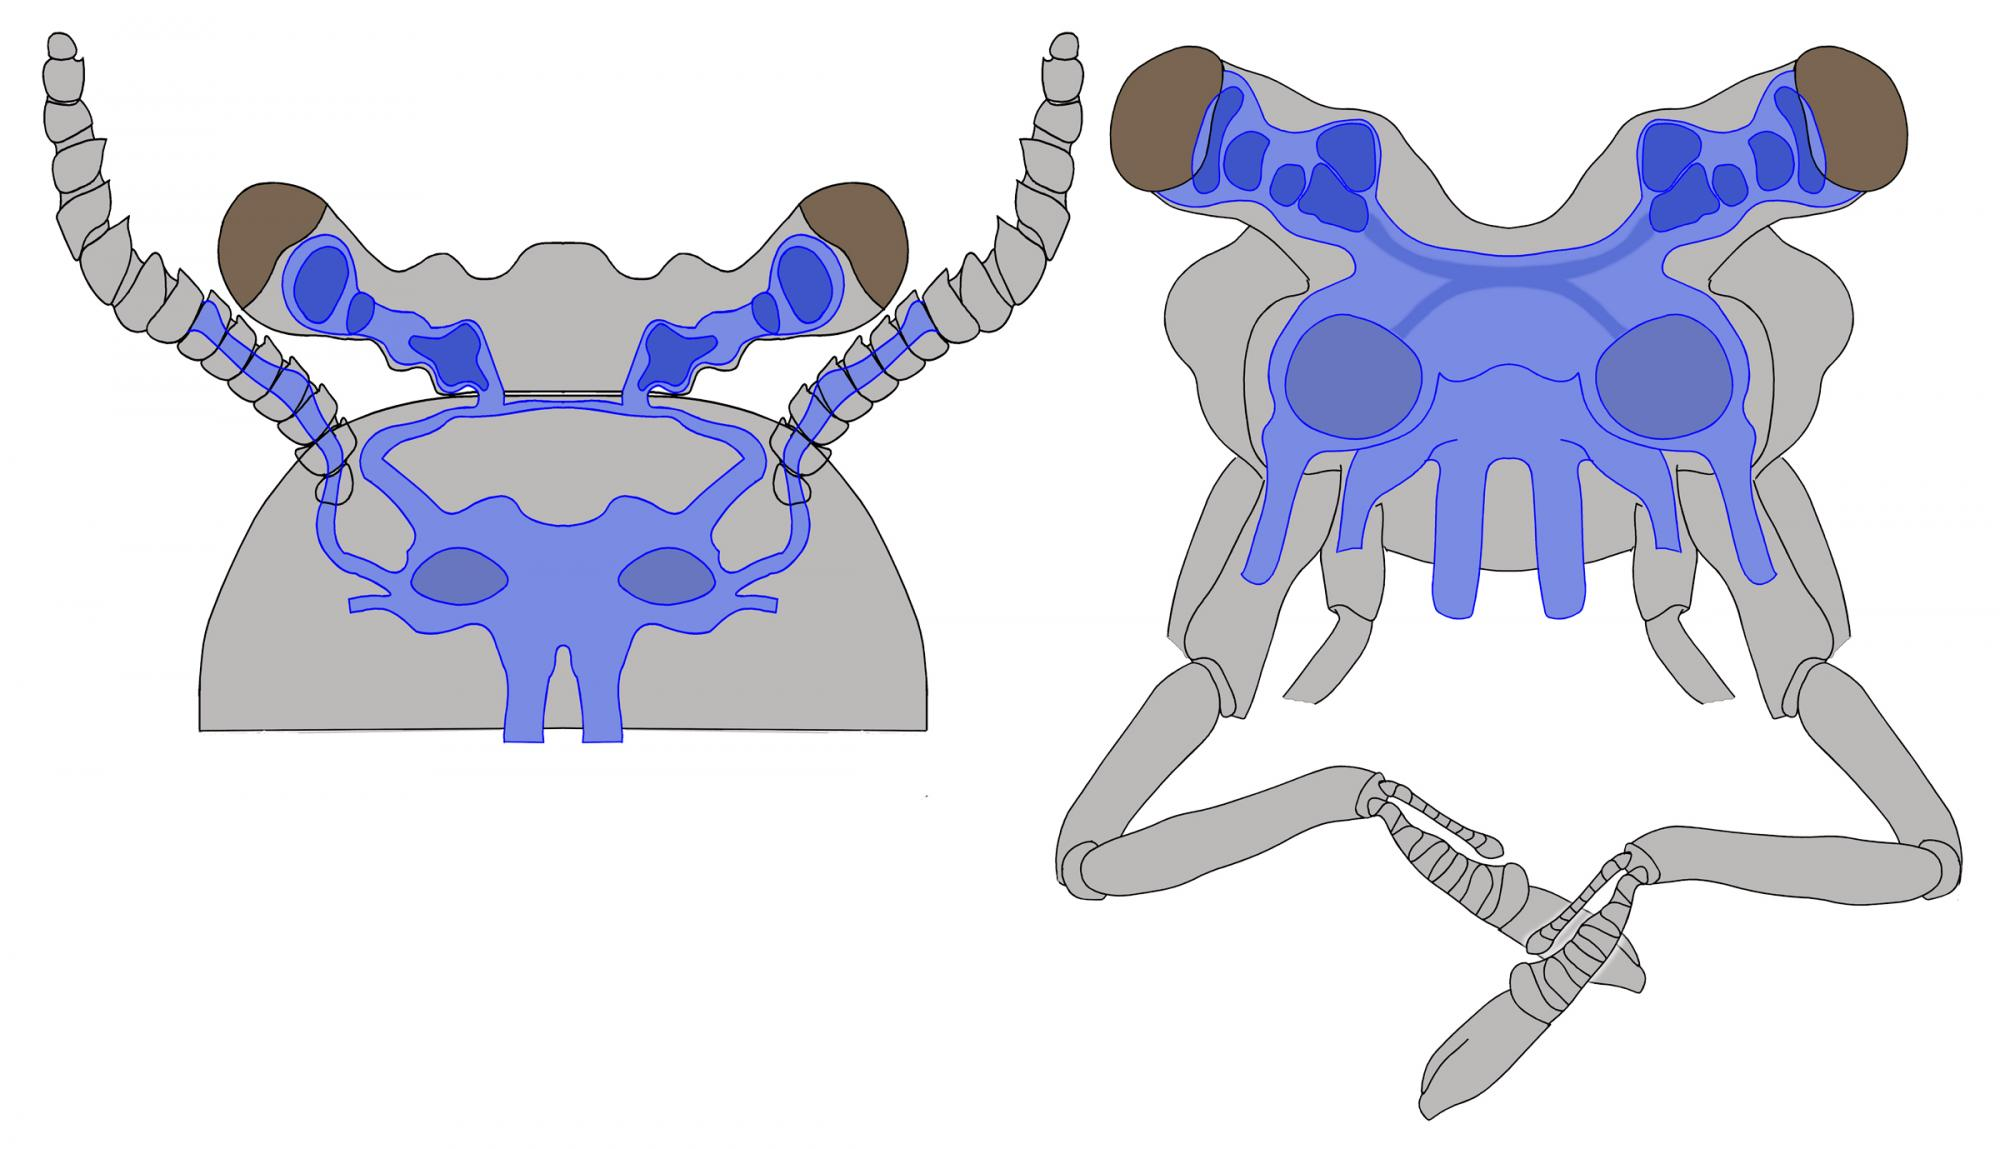 A modern brain in an ancient body: A reconstruction of the brain of the 520 million year-old fossil Fuxianhuia protensa , which has a very simple body shape, yet shows unexpected similarity to the complex brain of a modern crustacean, such as the land her